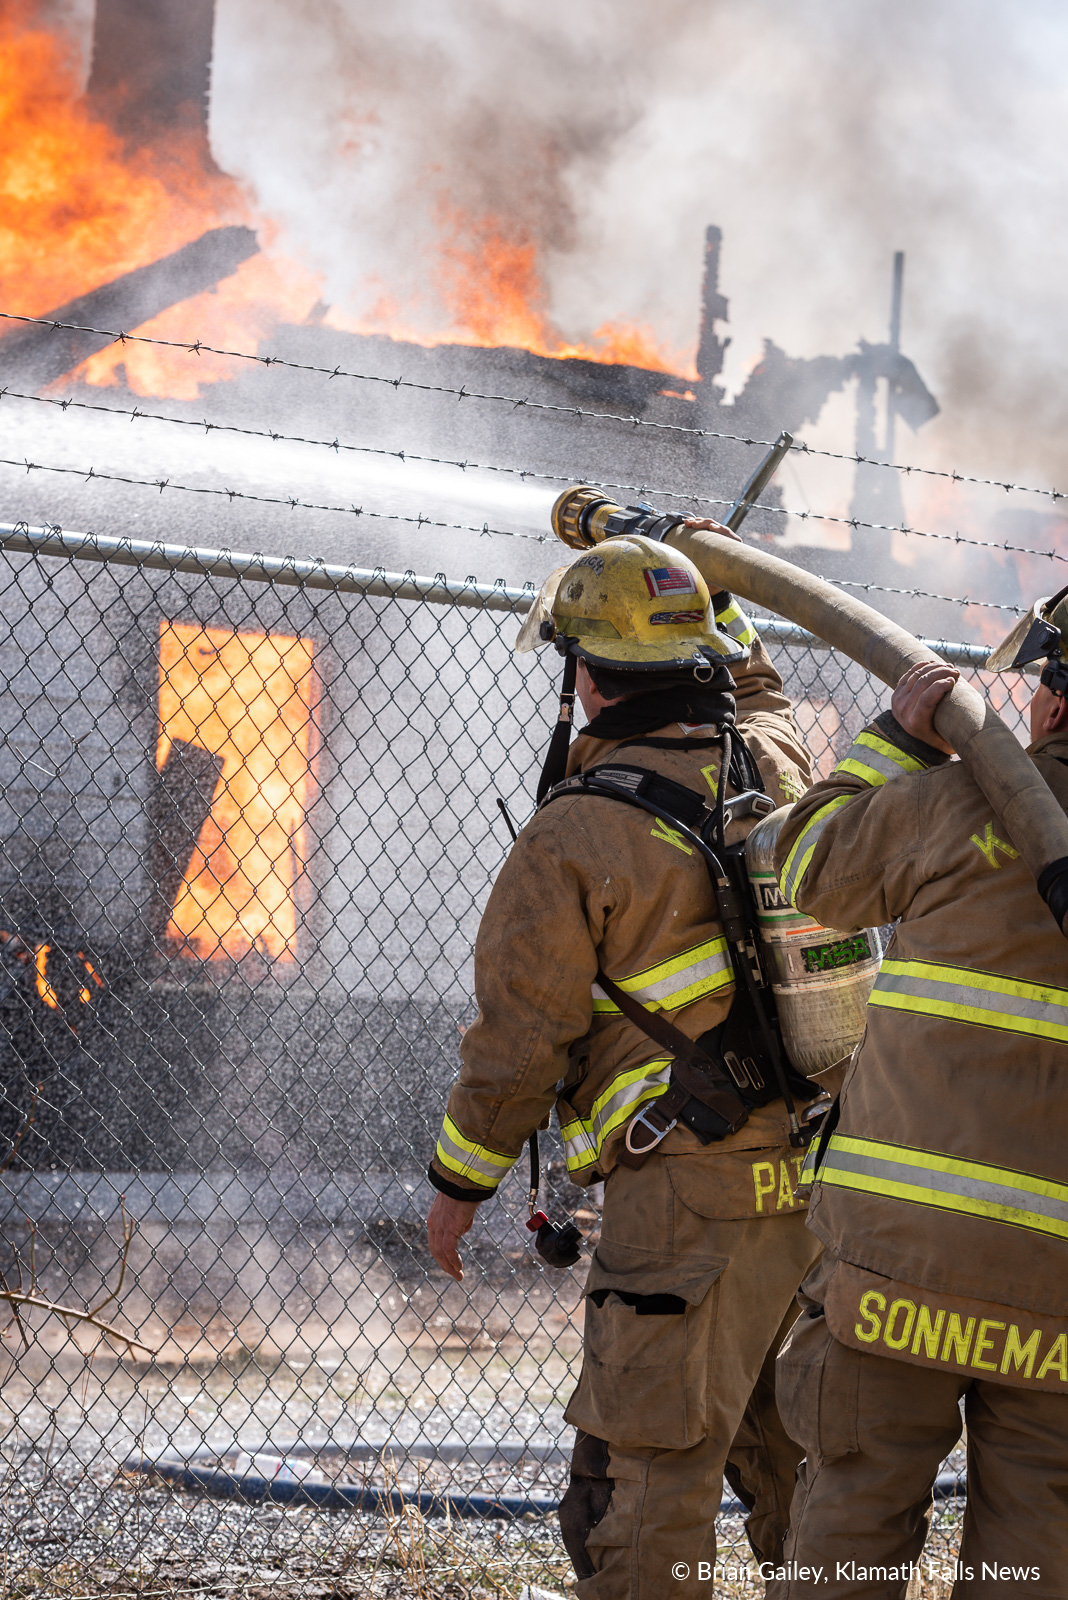 Klamath County Fire District 1, burn to learn training exercise. March 14, 2019. (Brian Gailey / Klamath Falls News)